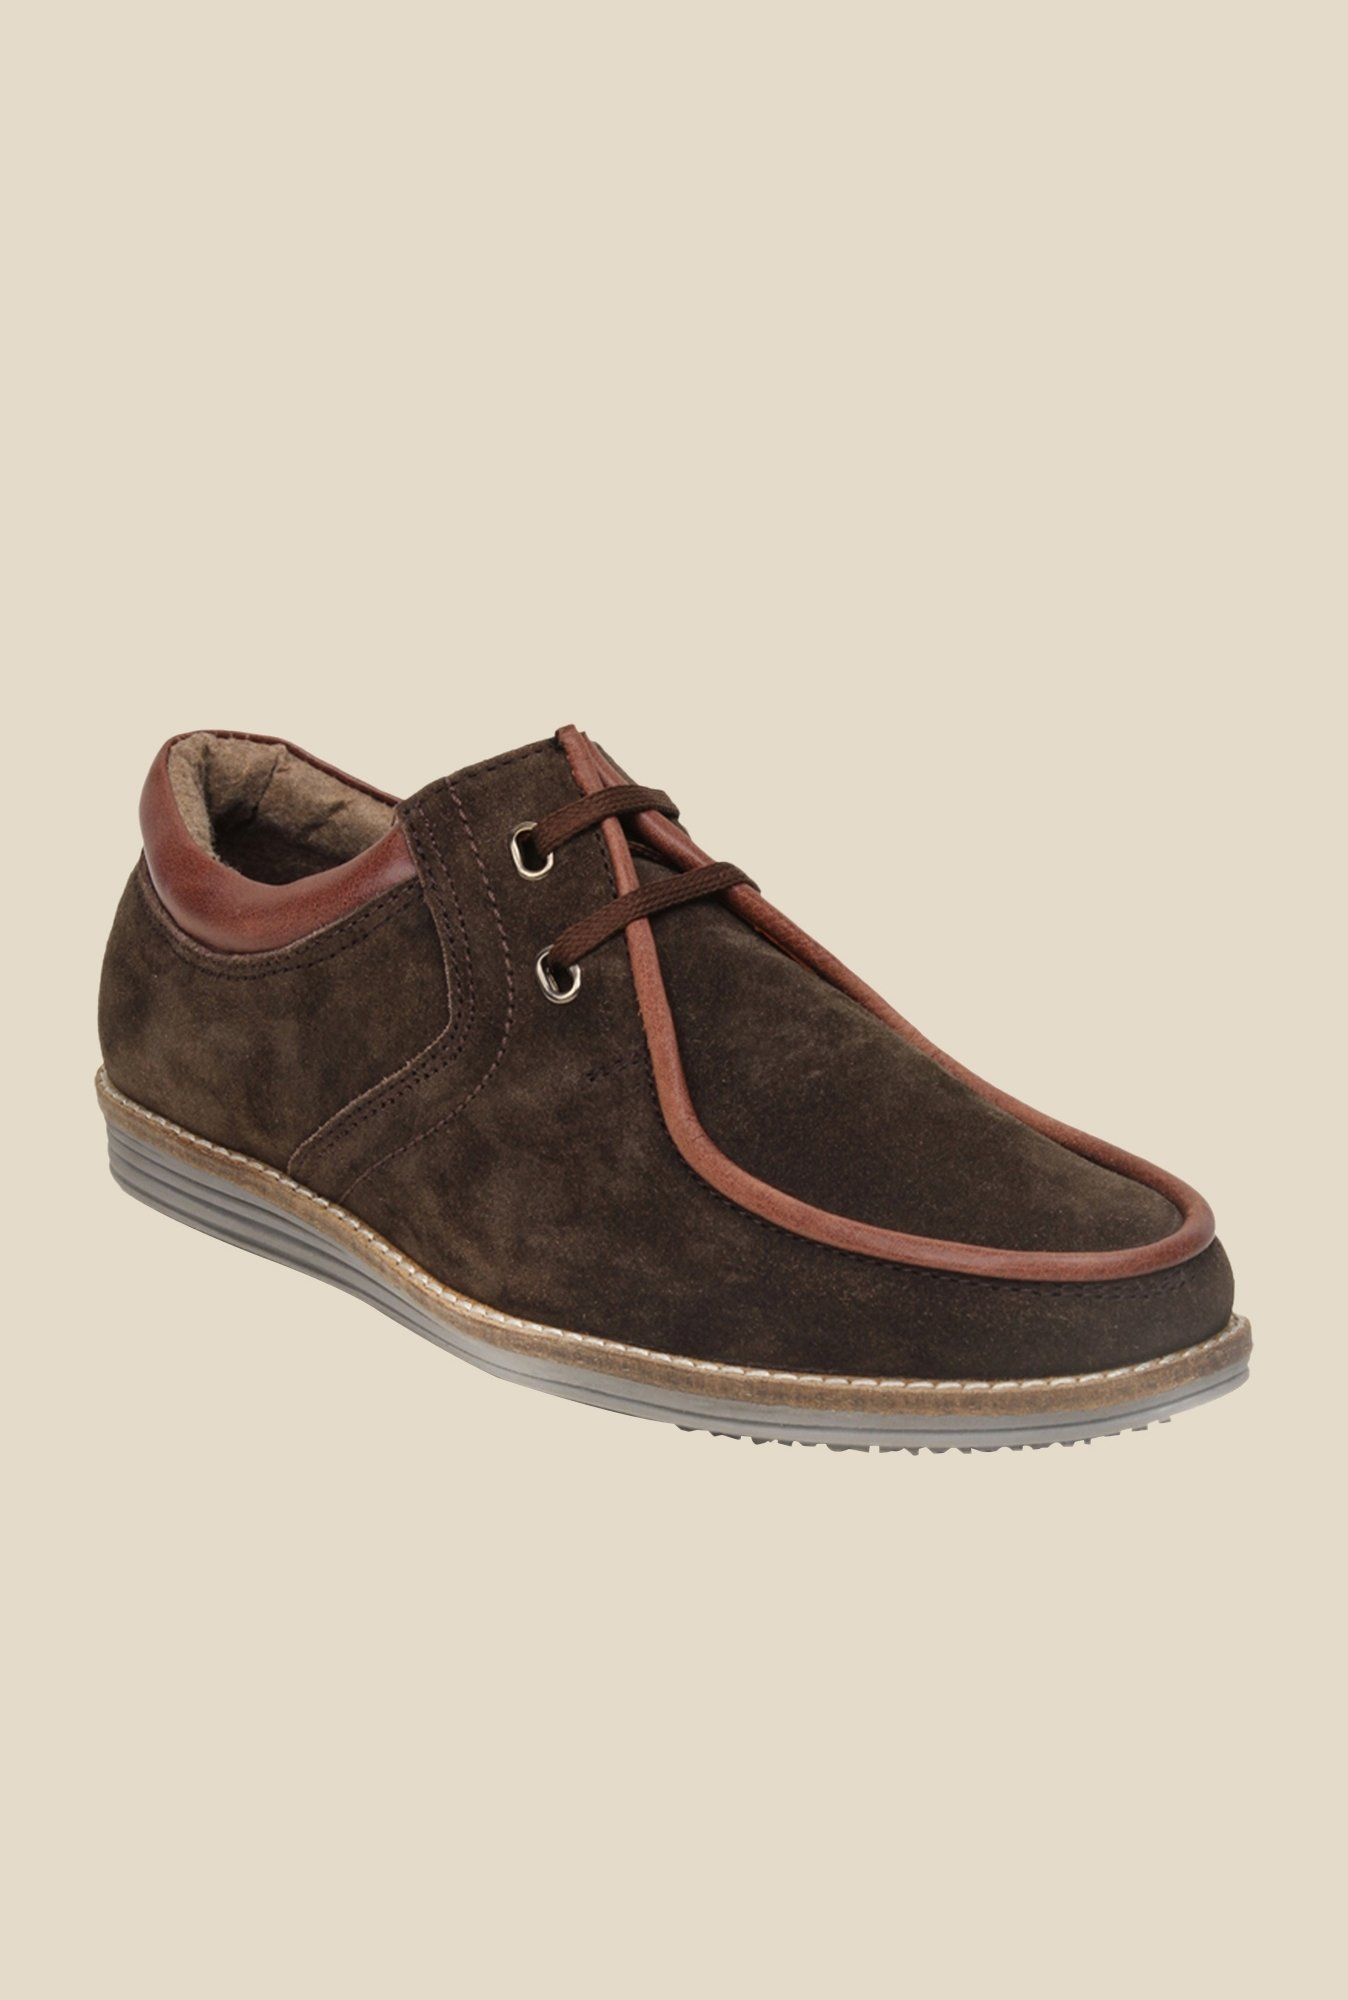 Bruno Manetti Brown Casual Shoes